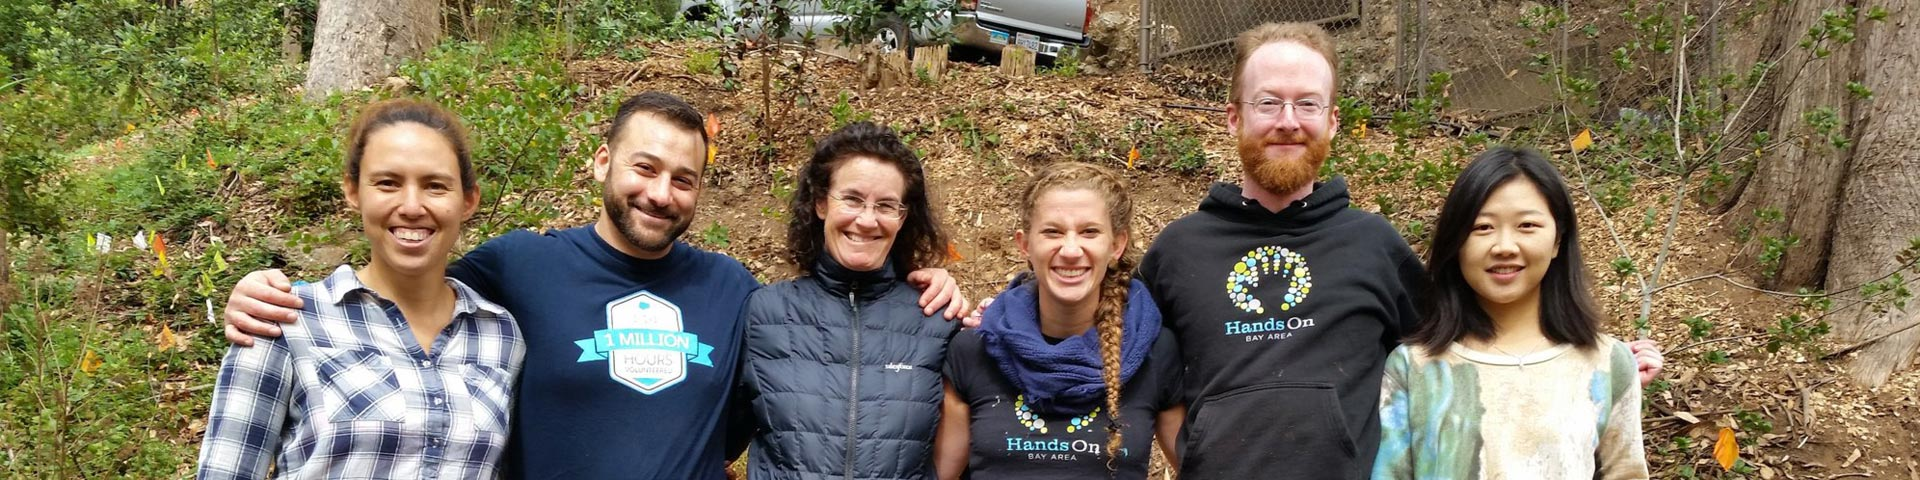 handson bay area project leaders